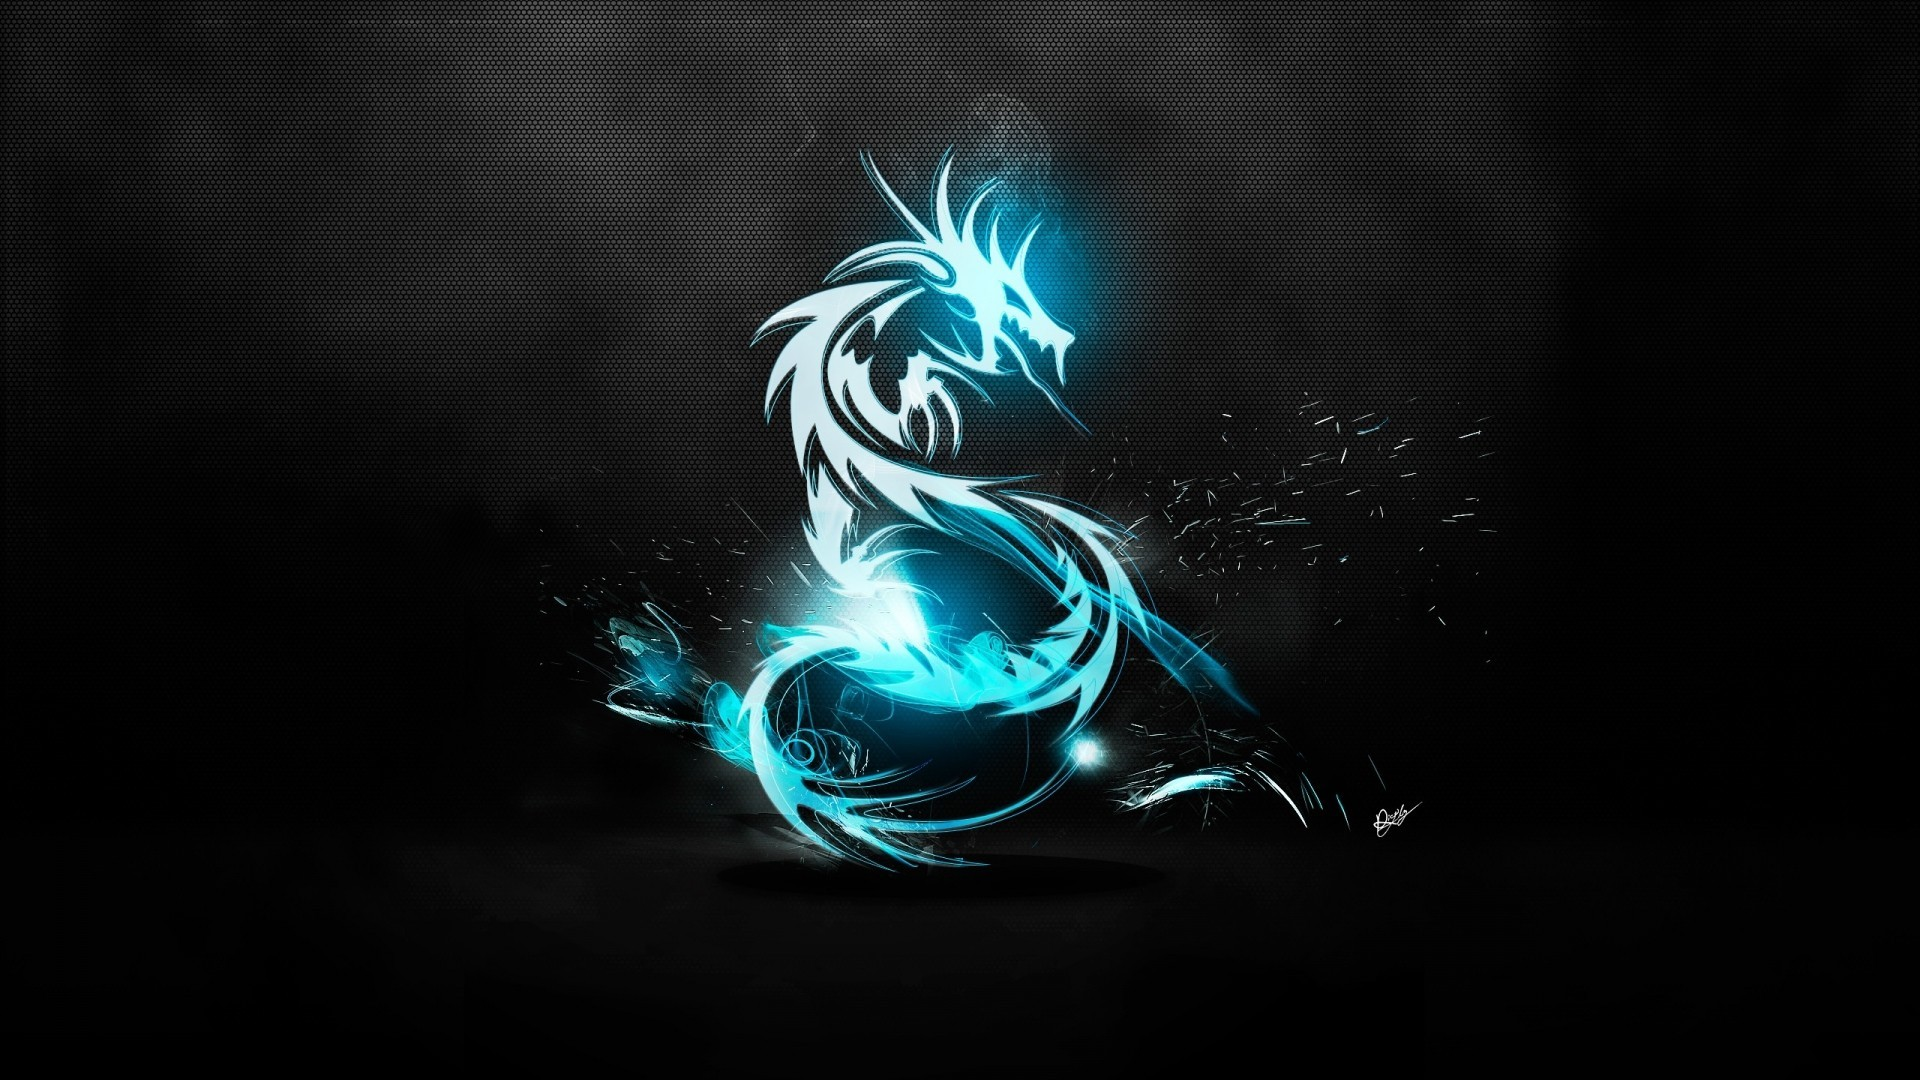 Cool Wallpaper Dragon HD